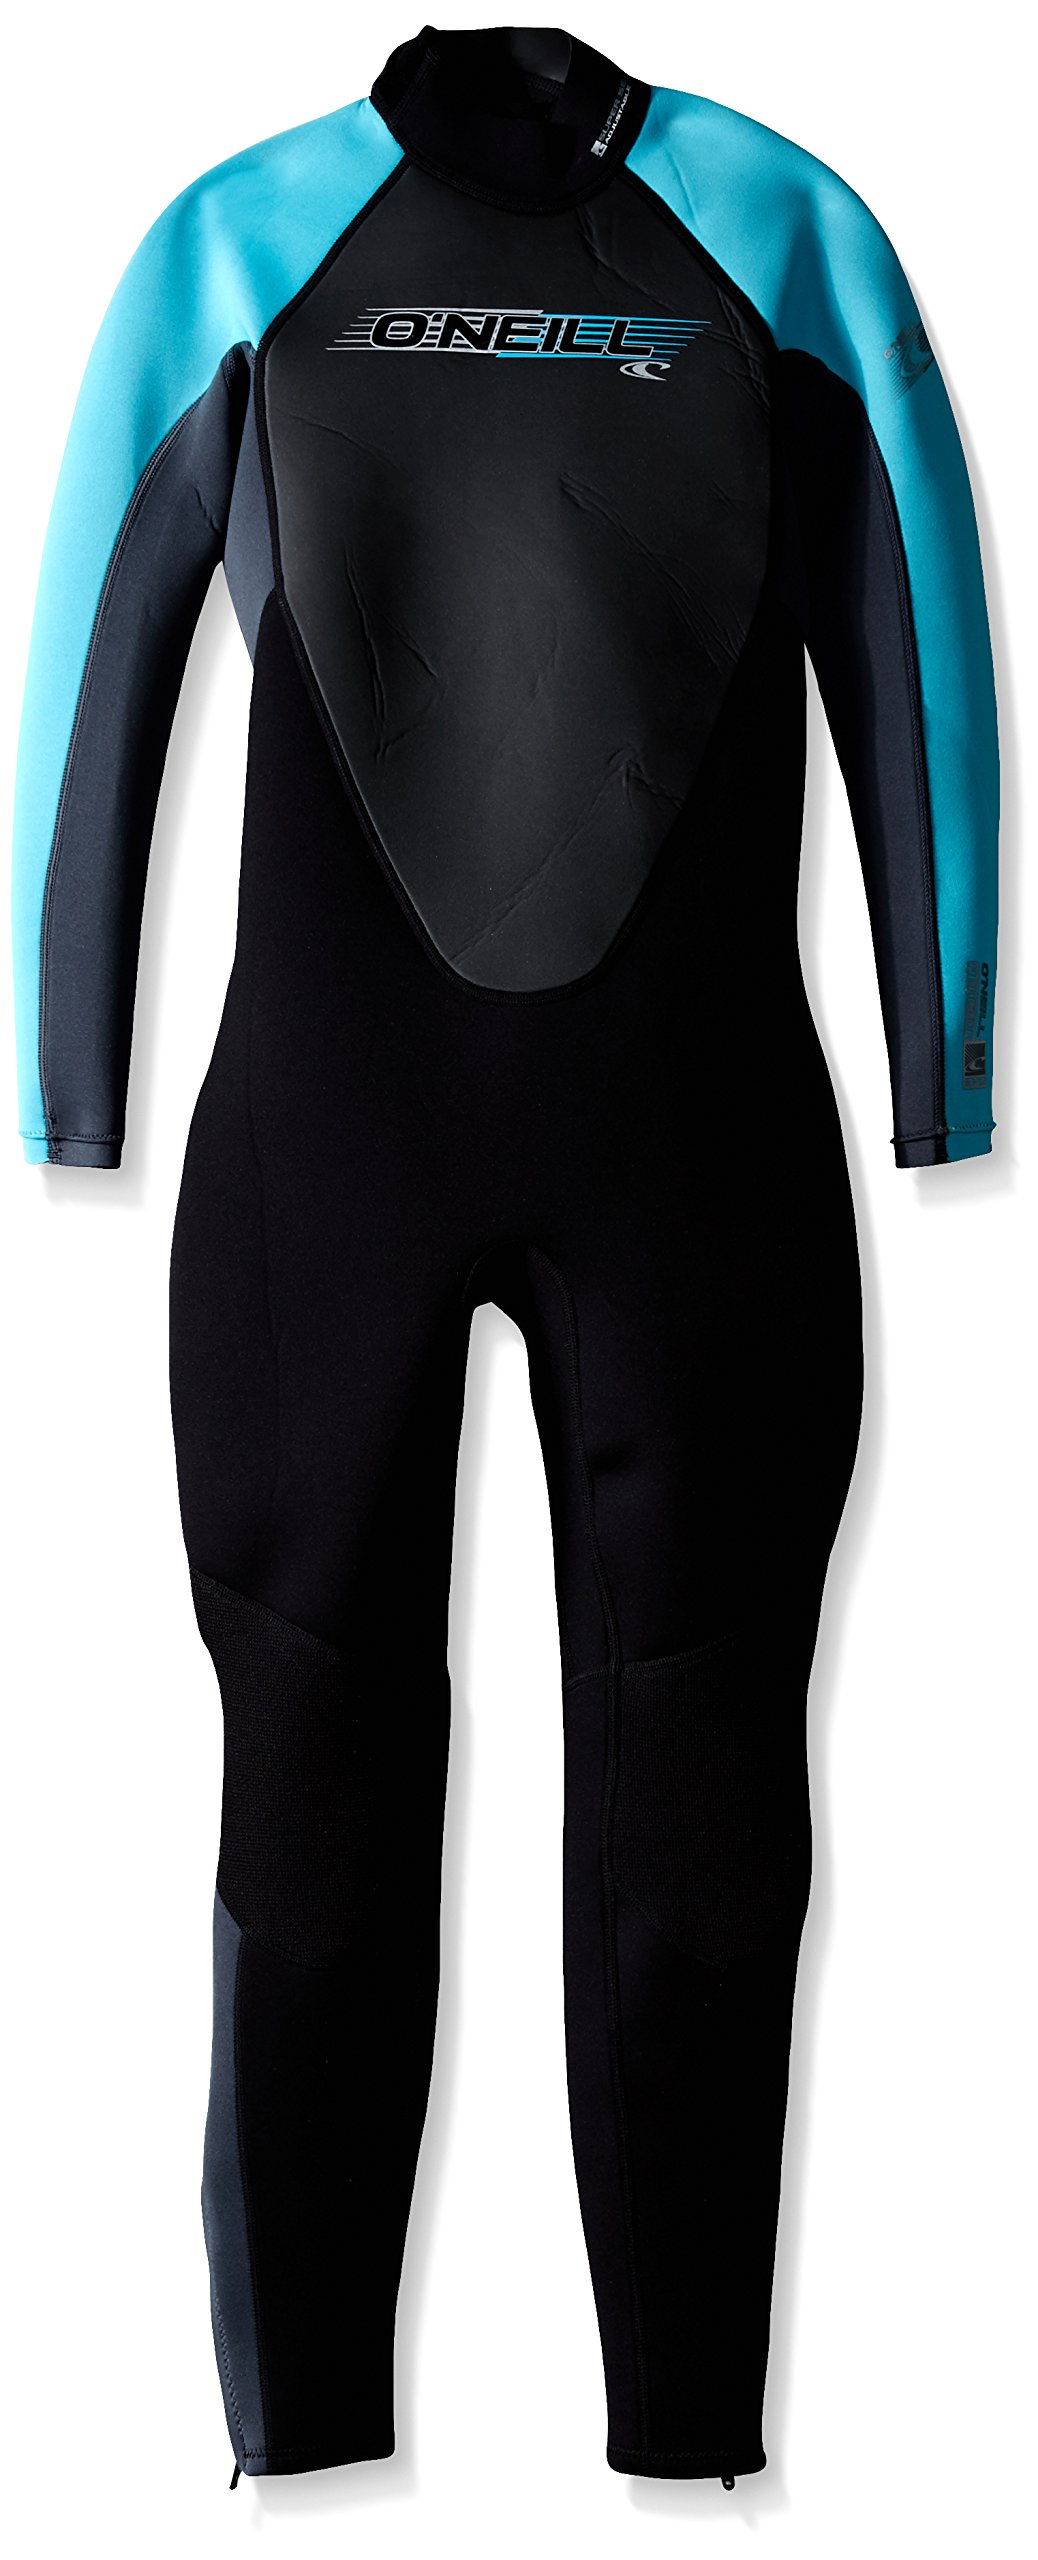 O'Neill Youth Reactor 3/2mm Back Zip Full Wetsuit, Black/Graphite/Turquoise, 14